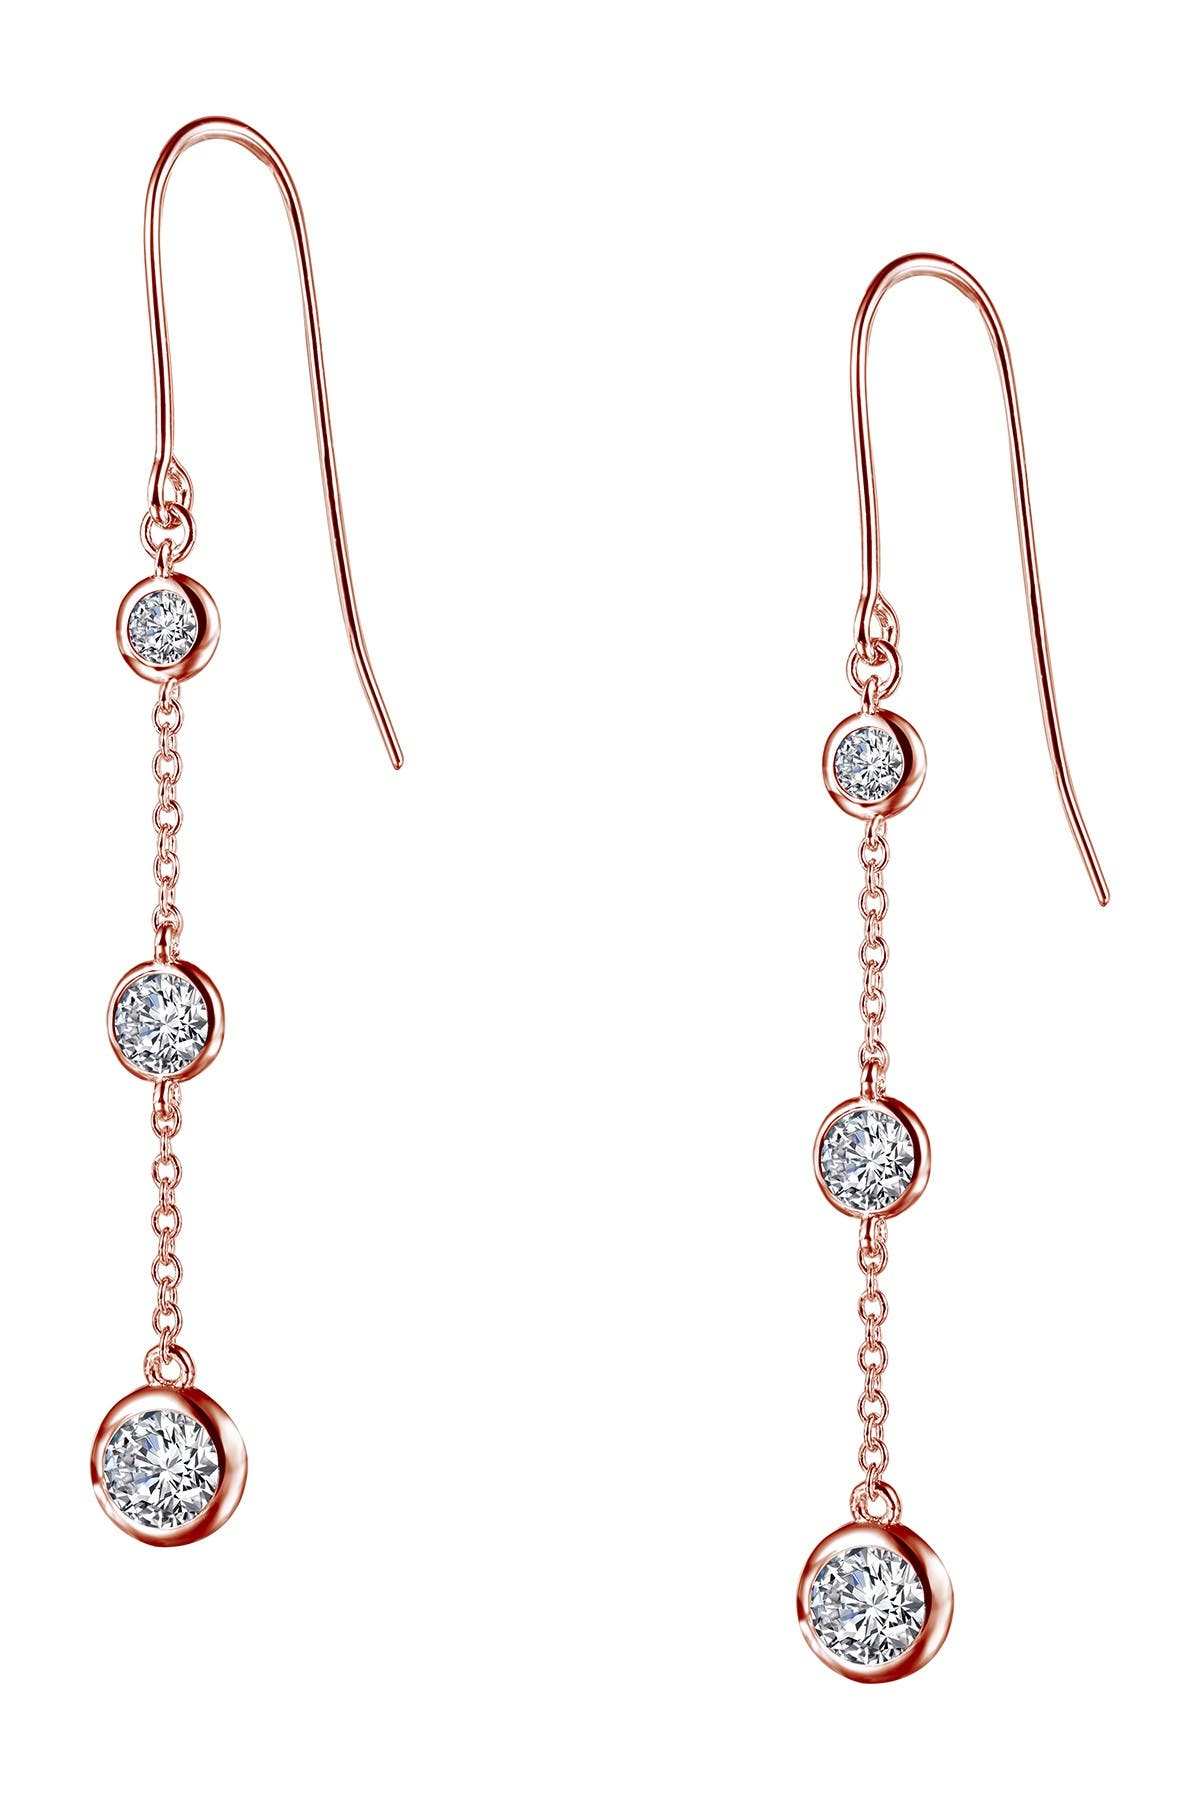 Image of LaFonn Rose Gold Over Sterling Silver Simulated Diamond Drop Earrings